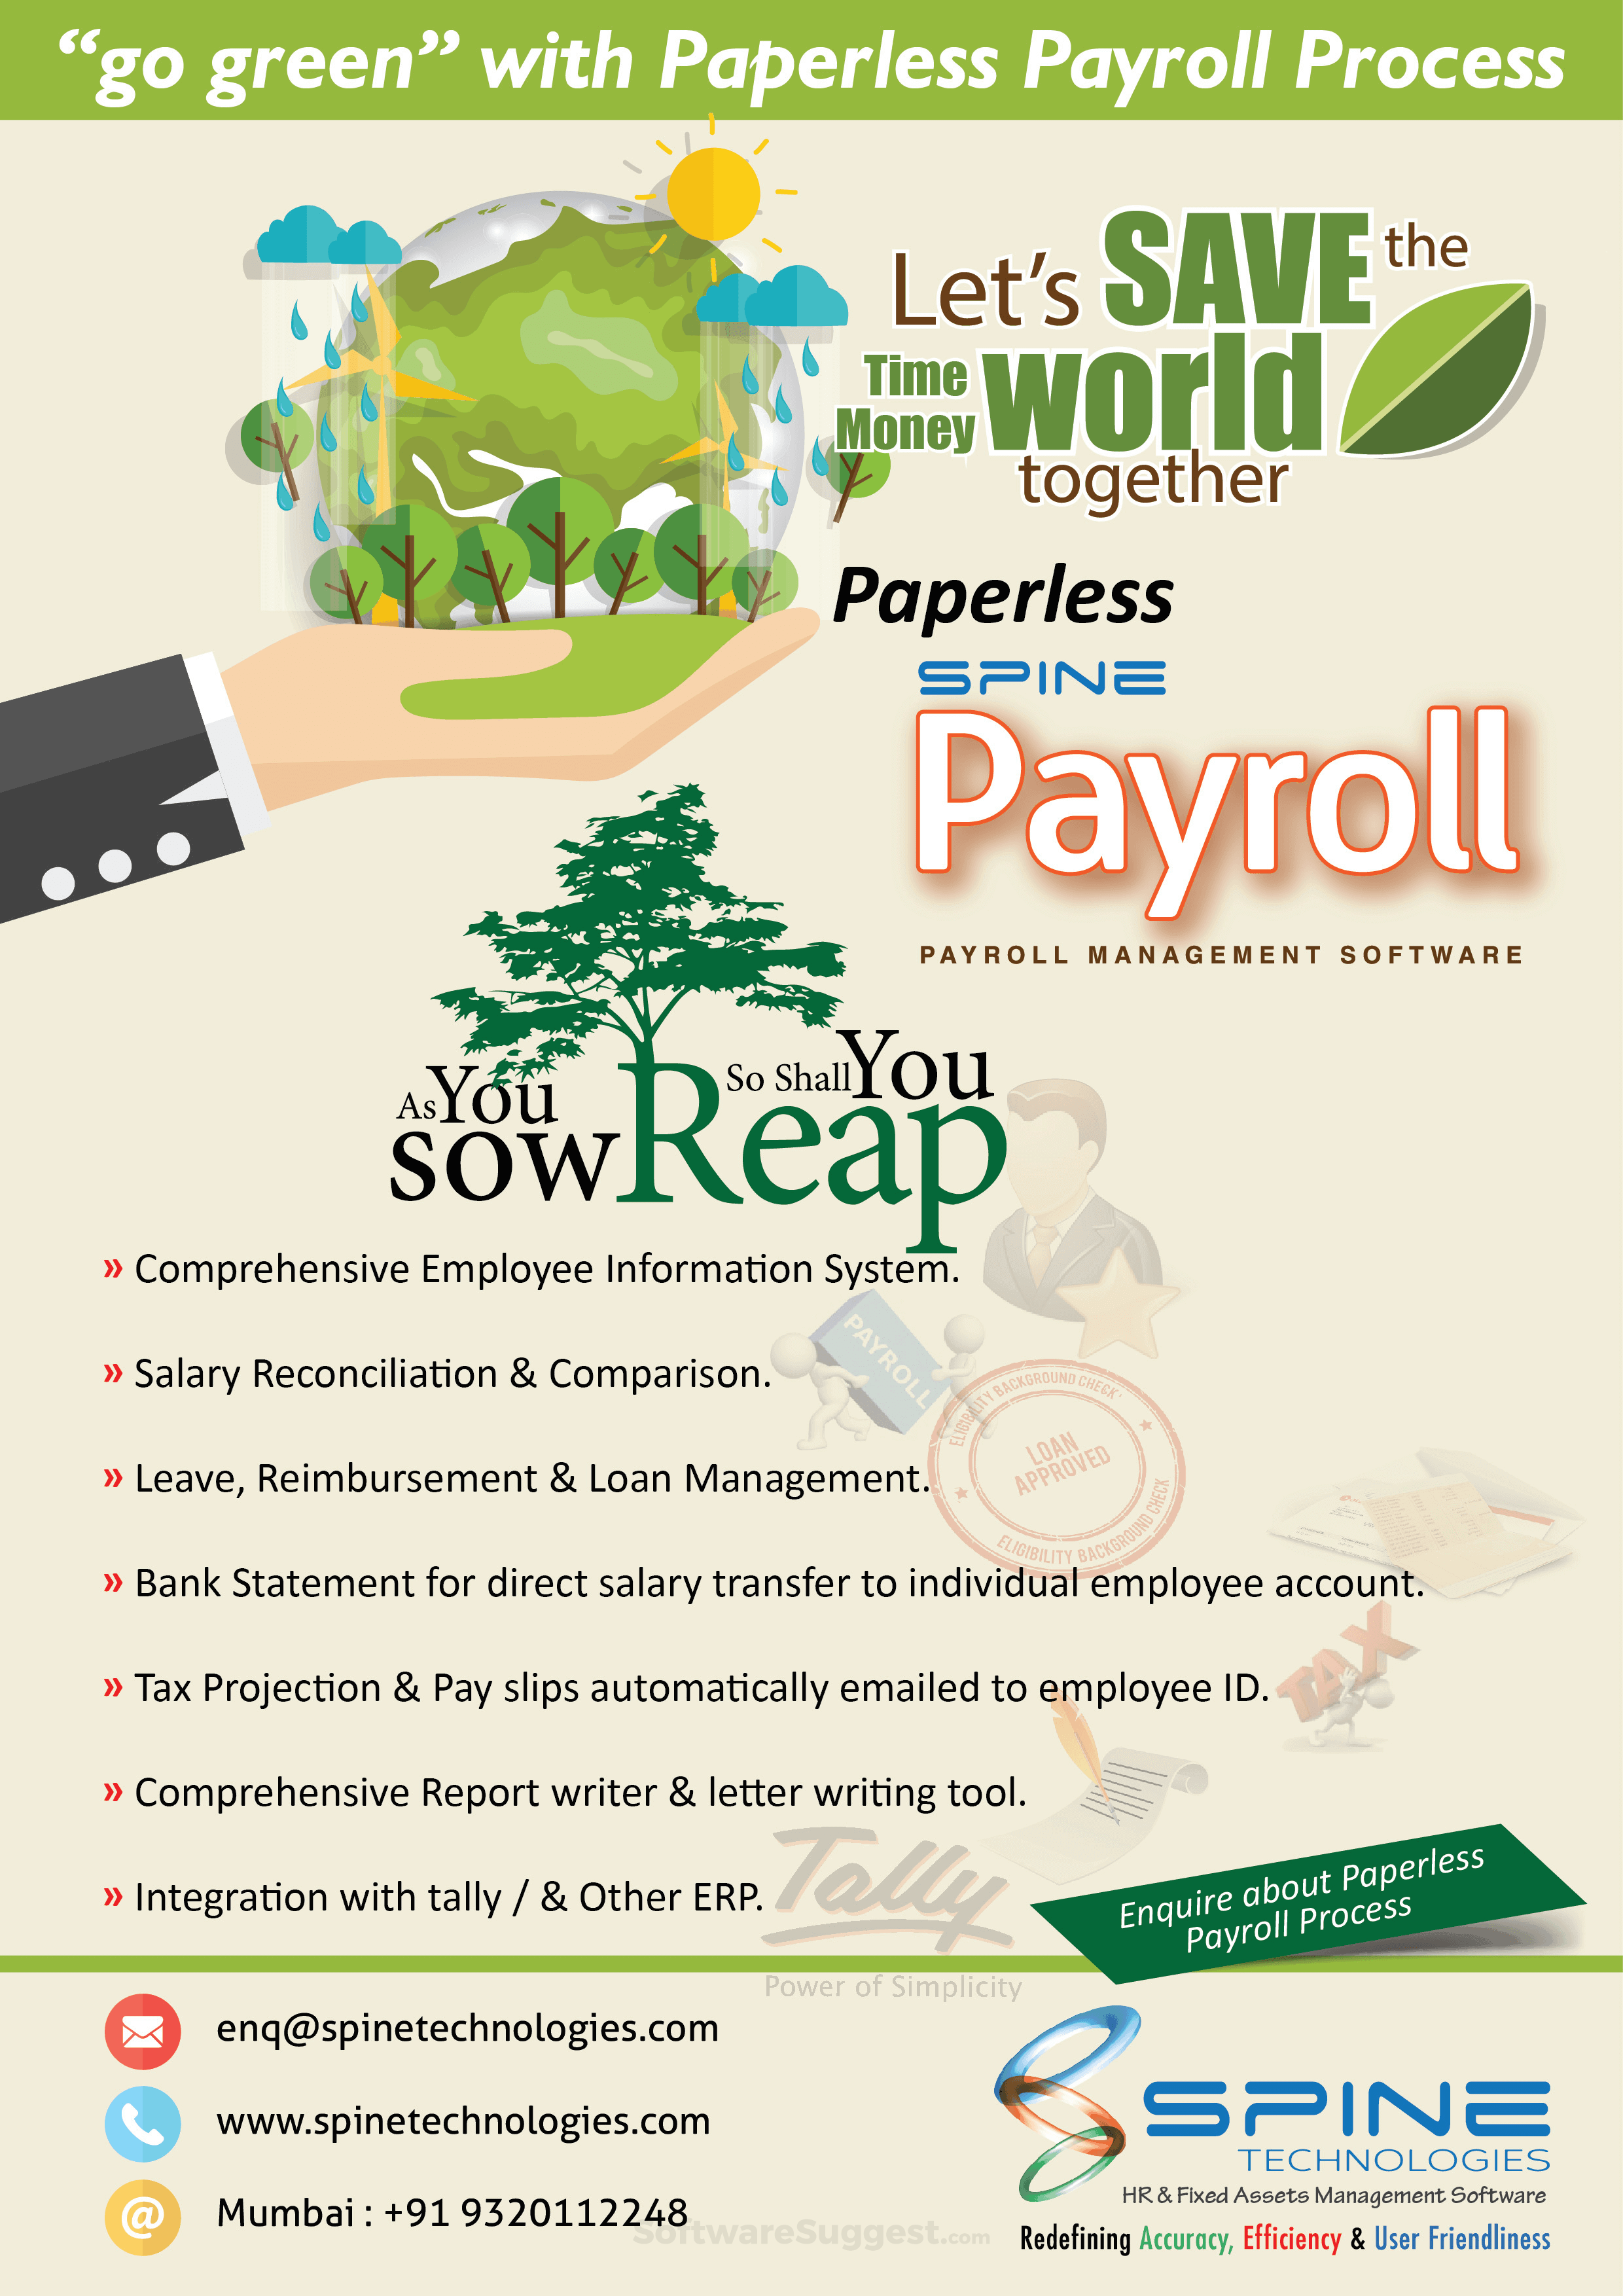 Spine Payroll Pricing, Features & Reviews 2019 - Free Demo